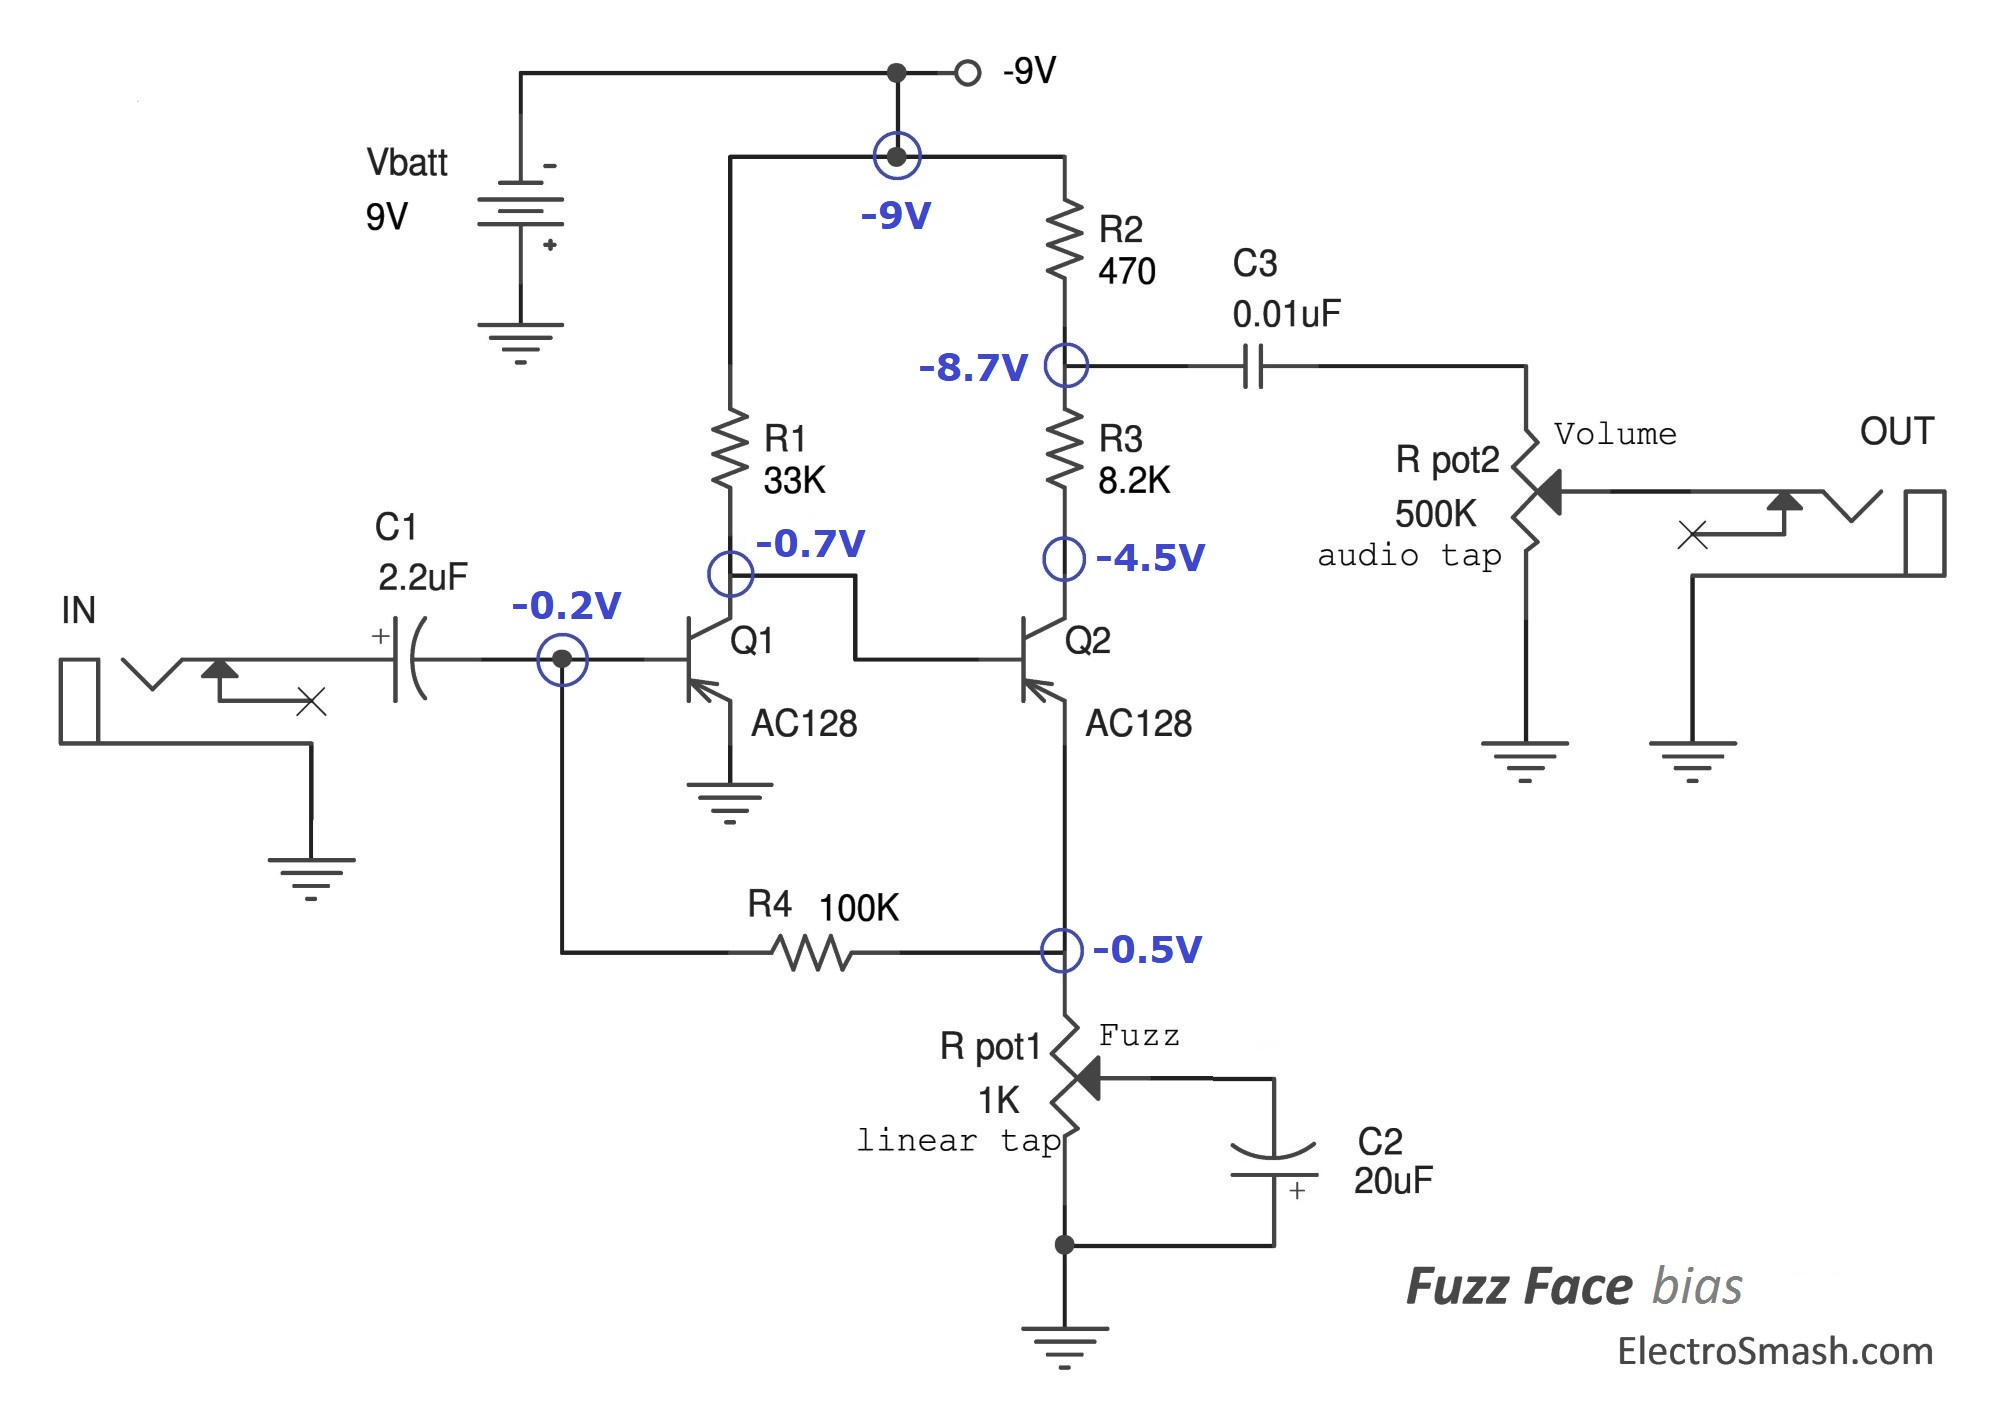 guitar effects pedal circuit on variable resistor circuit diagram electrosmash fuzz face analysis guitar effects pedal circuit on variable resistor circuit diagram